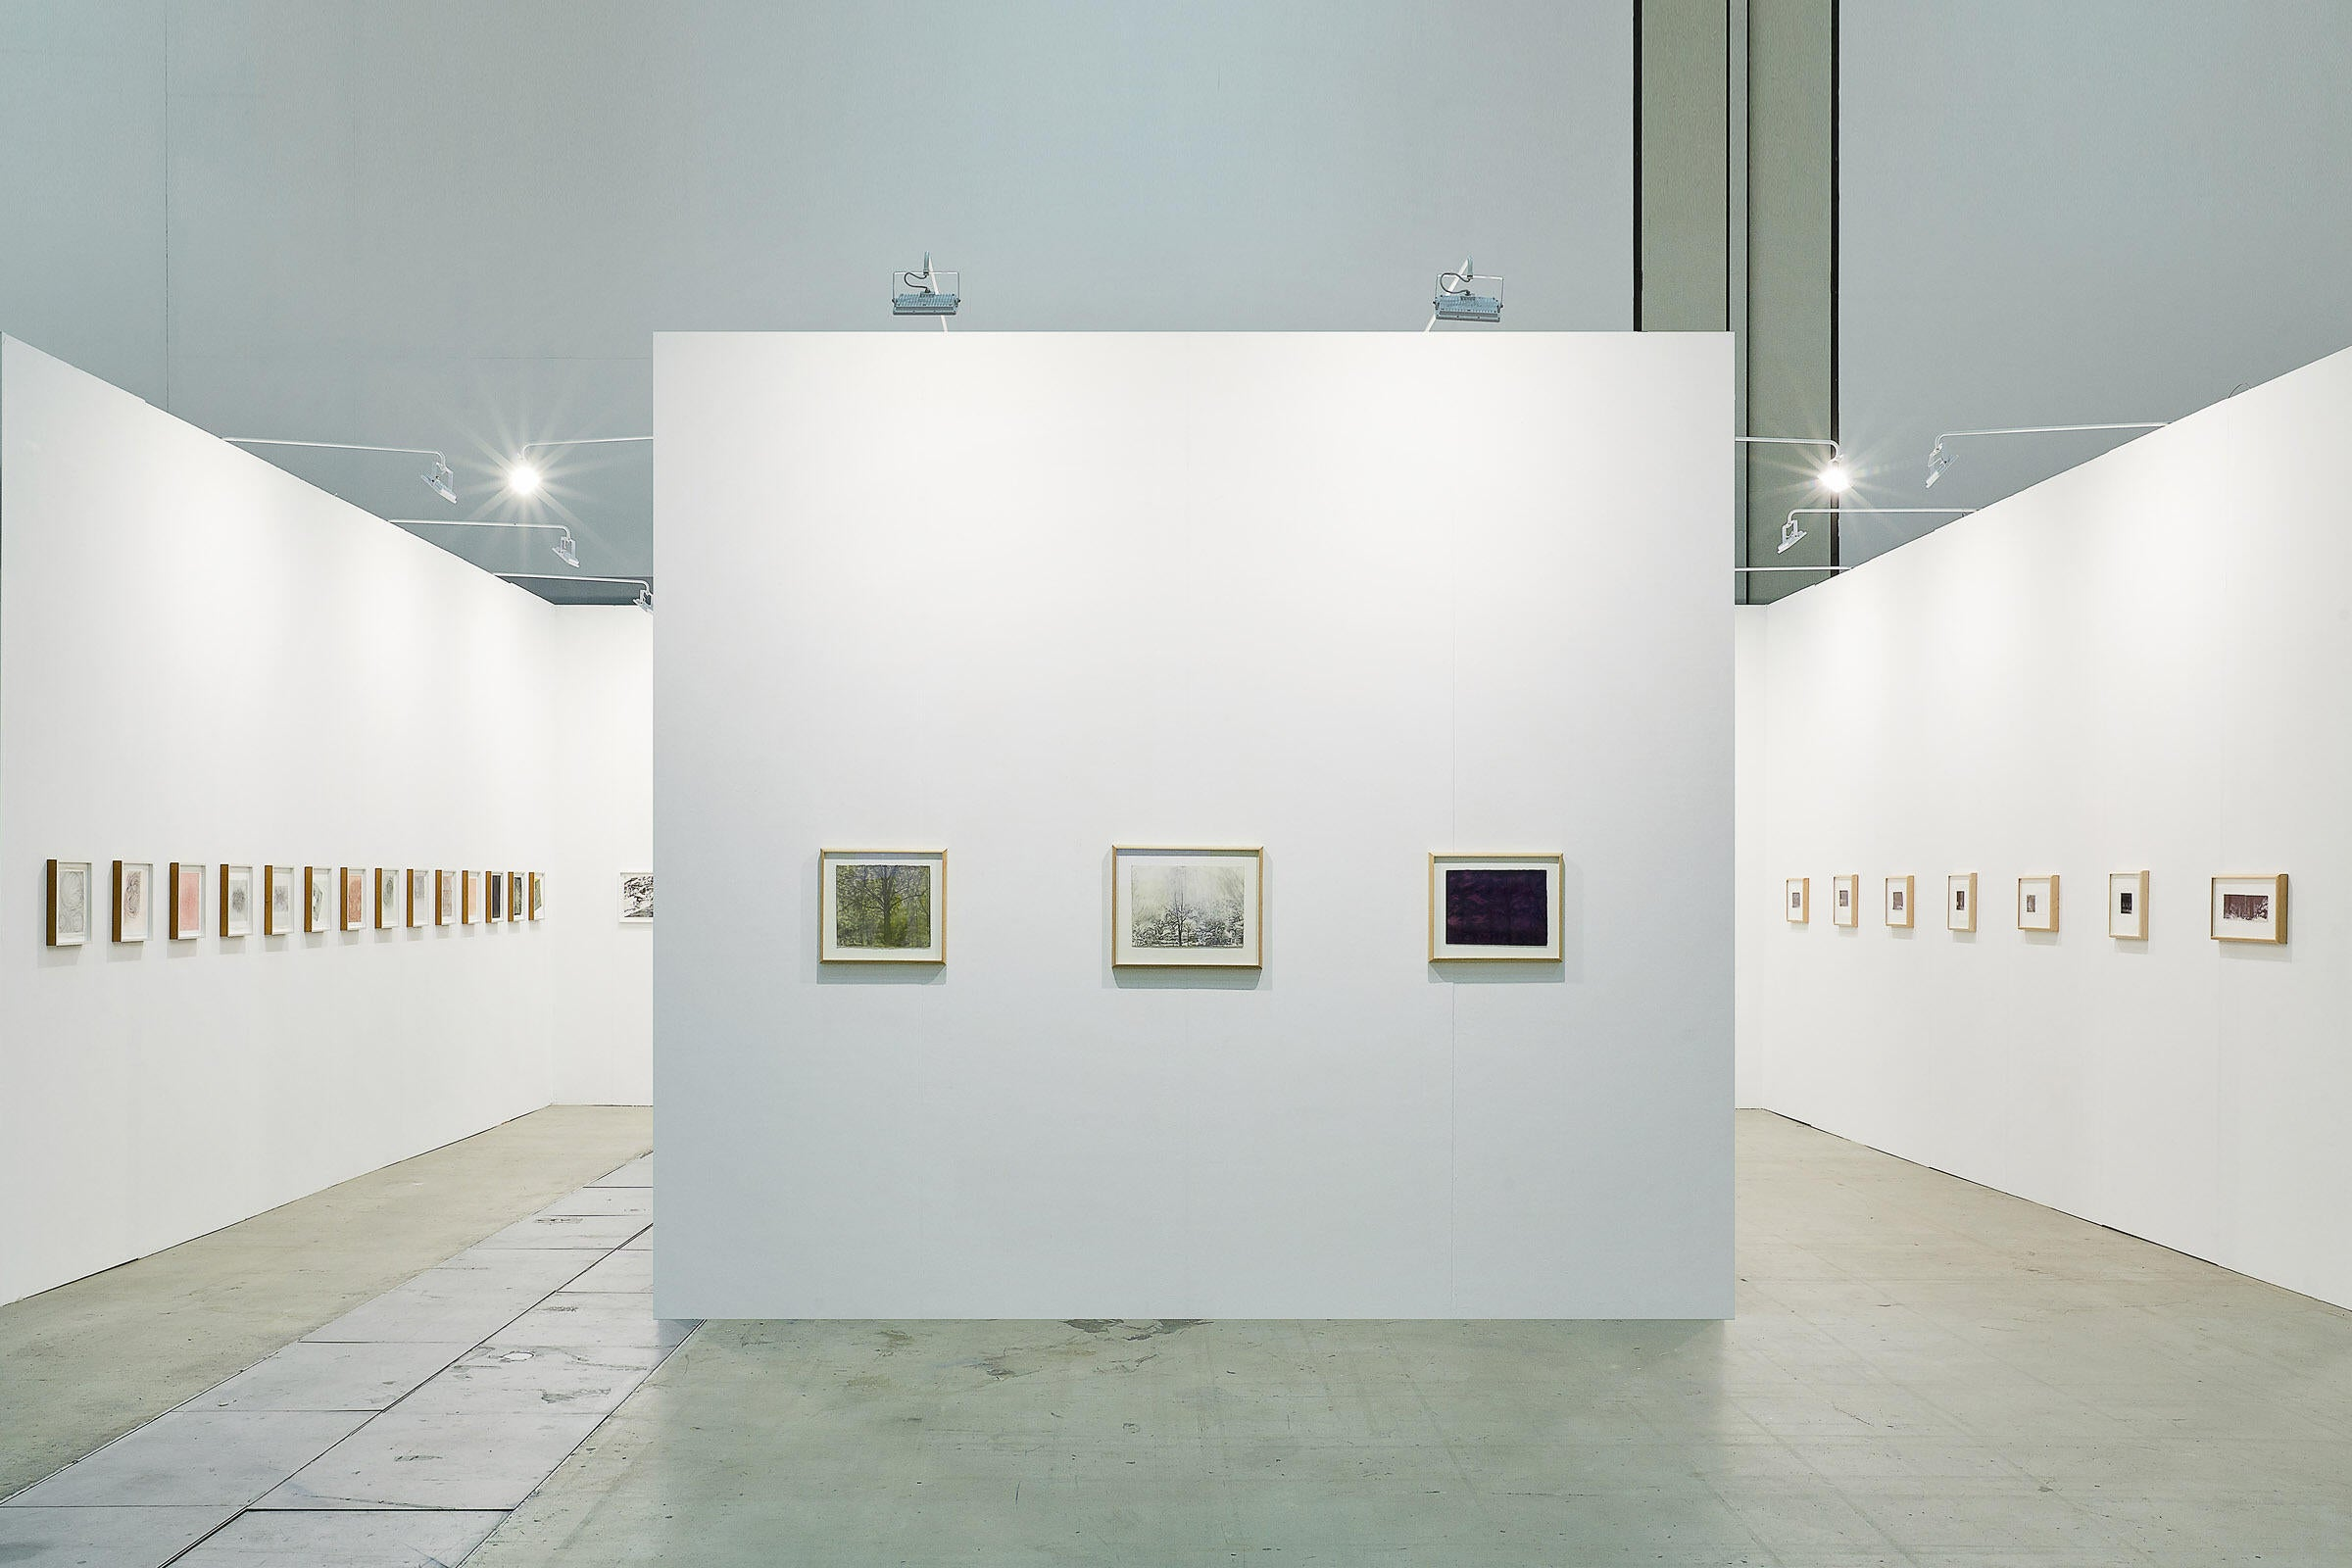 Installation of Drawings by Marie Cloquet, Linn Meyers, and Charles Ritchie at Art Busan 2020, Busan, South Korea image